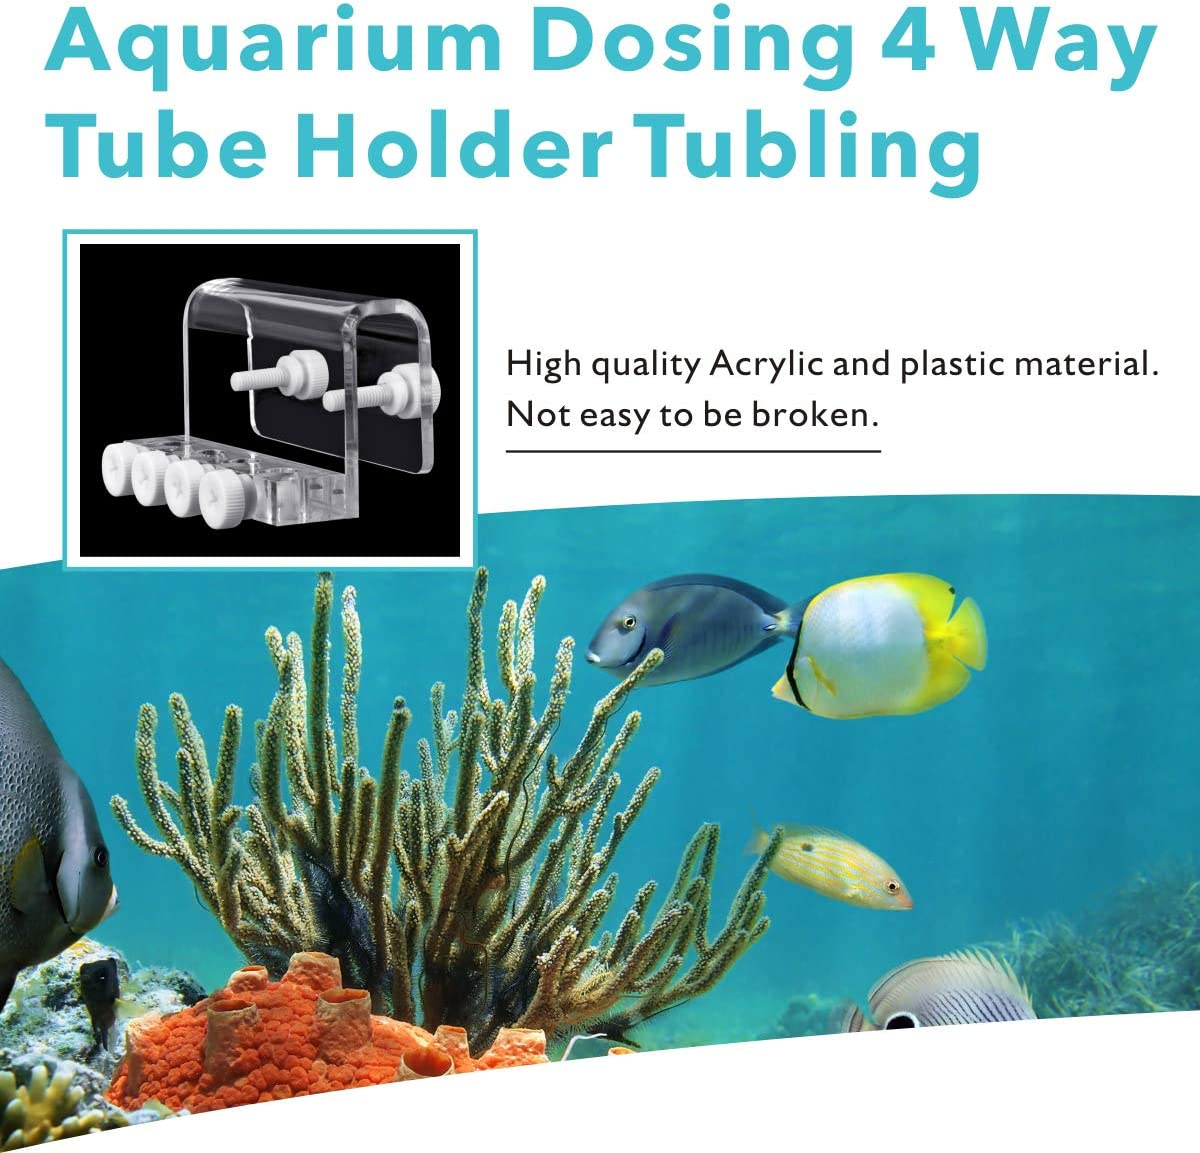 4 Channel Dosing Heads with 8 Titration Long Hoses Timing Quantitative Programmable Auto Titration Pump for Marine Coral Tanks hygger Aquarium Dosing Pump